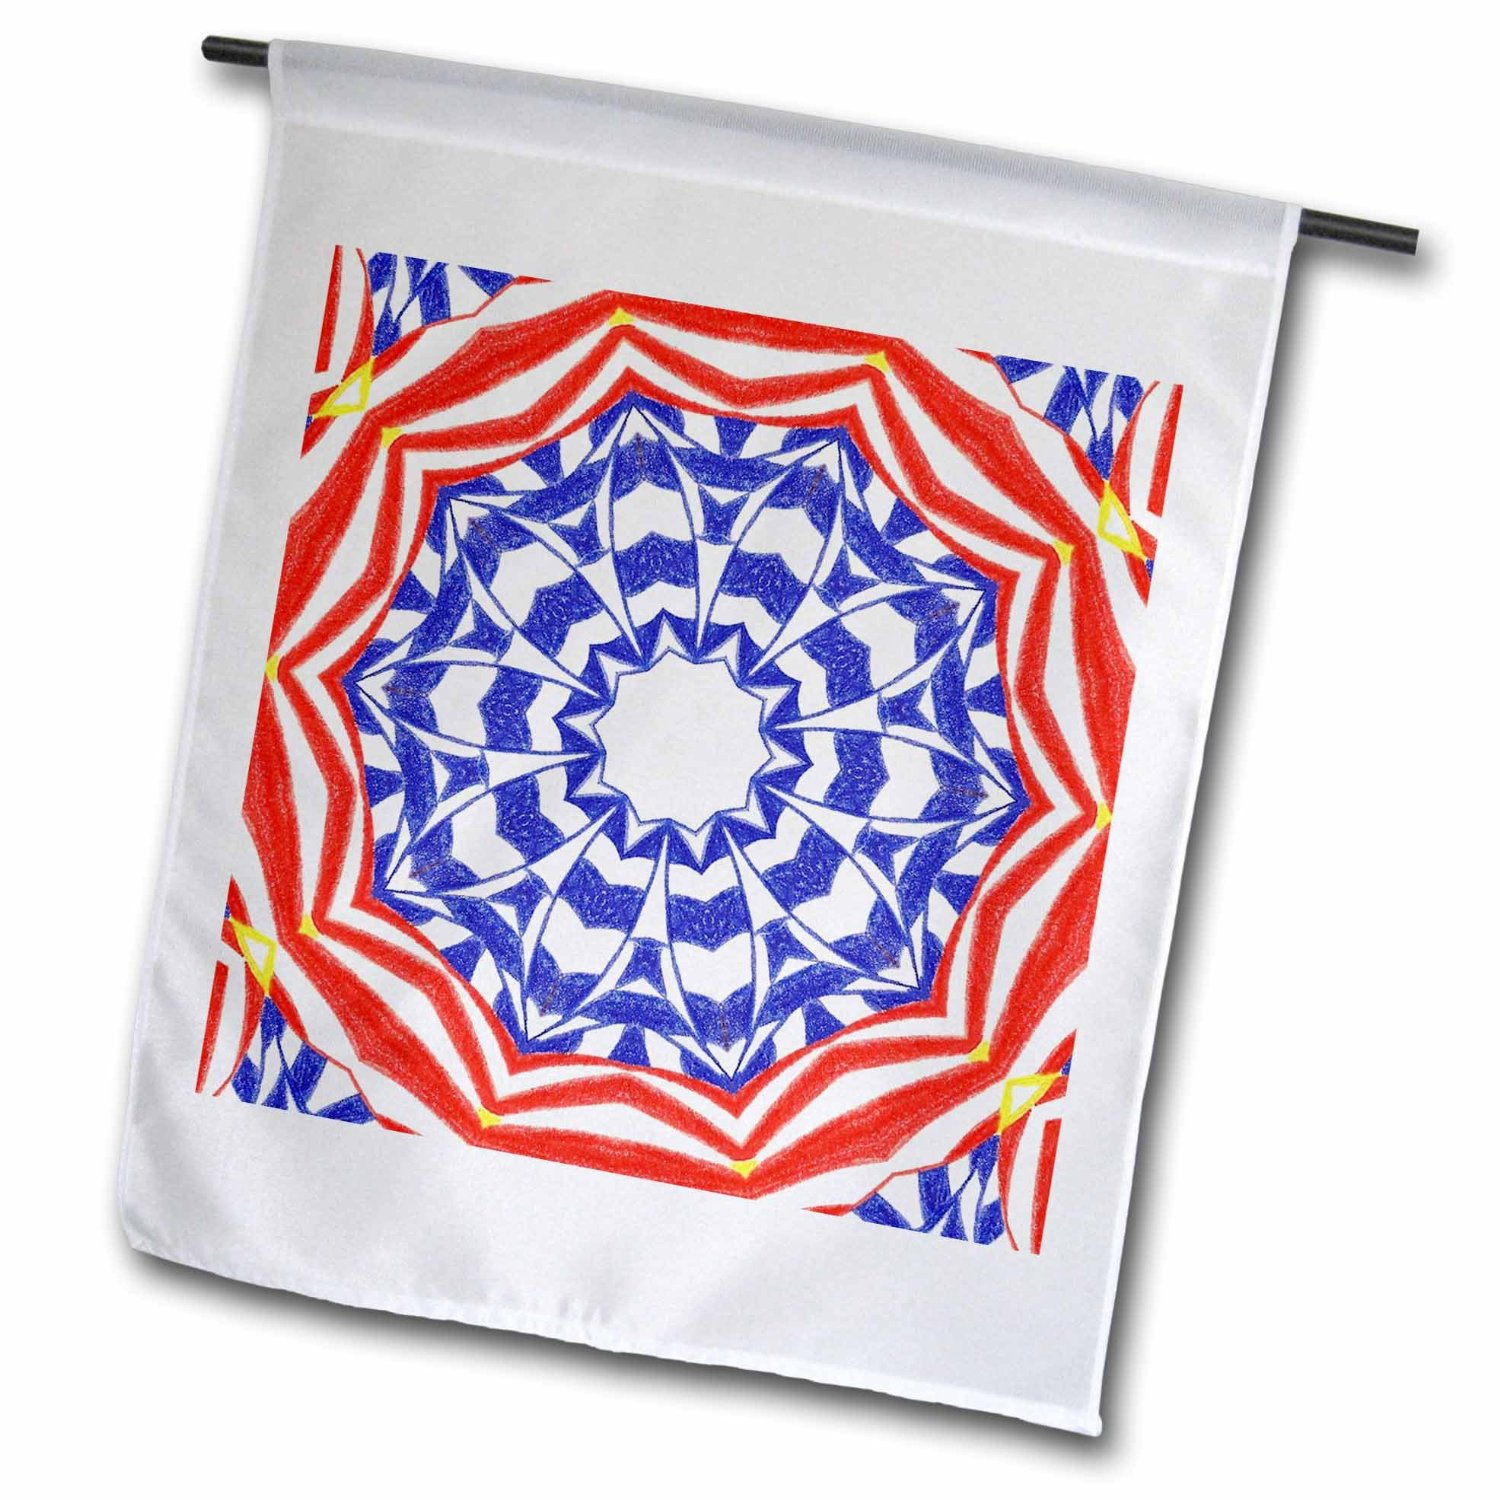 CherylsArt Kaleidoscope Patterns - Red White Blue Patriotic Flower Kaleidoscope Pattern - 18 x 27 inch Garden Flag (fl_39479_2)